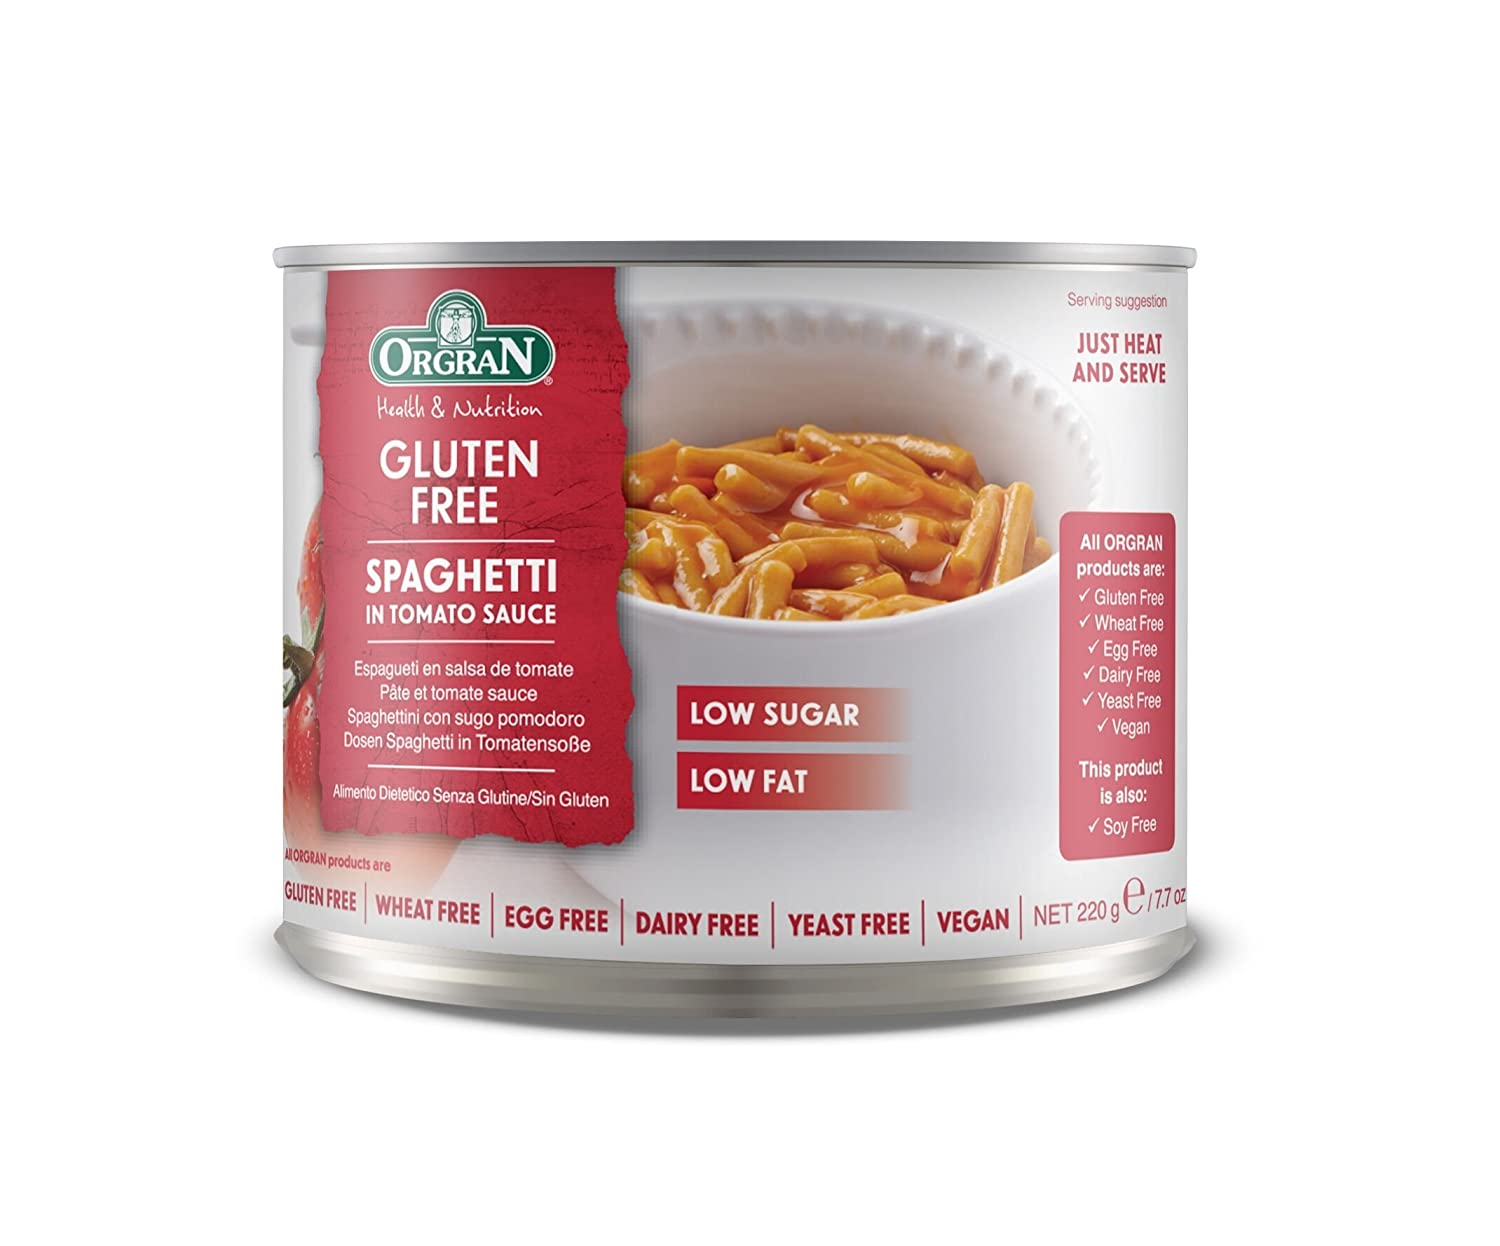 Amazon.com : OrgraN Spaghetti in Tomato Sauce, 7.7-Ounce Cans (Pack of 12) : Prepared Spaghetti : Grocery & Gourmet Food